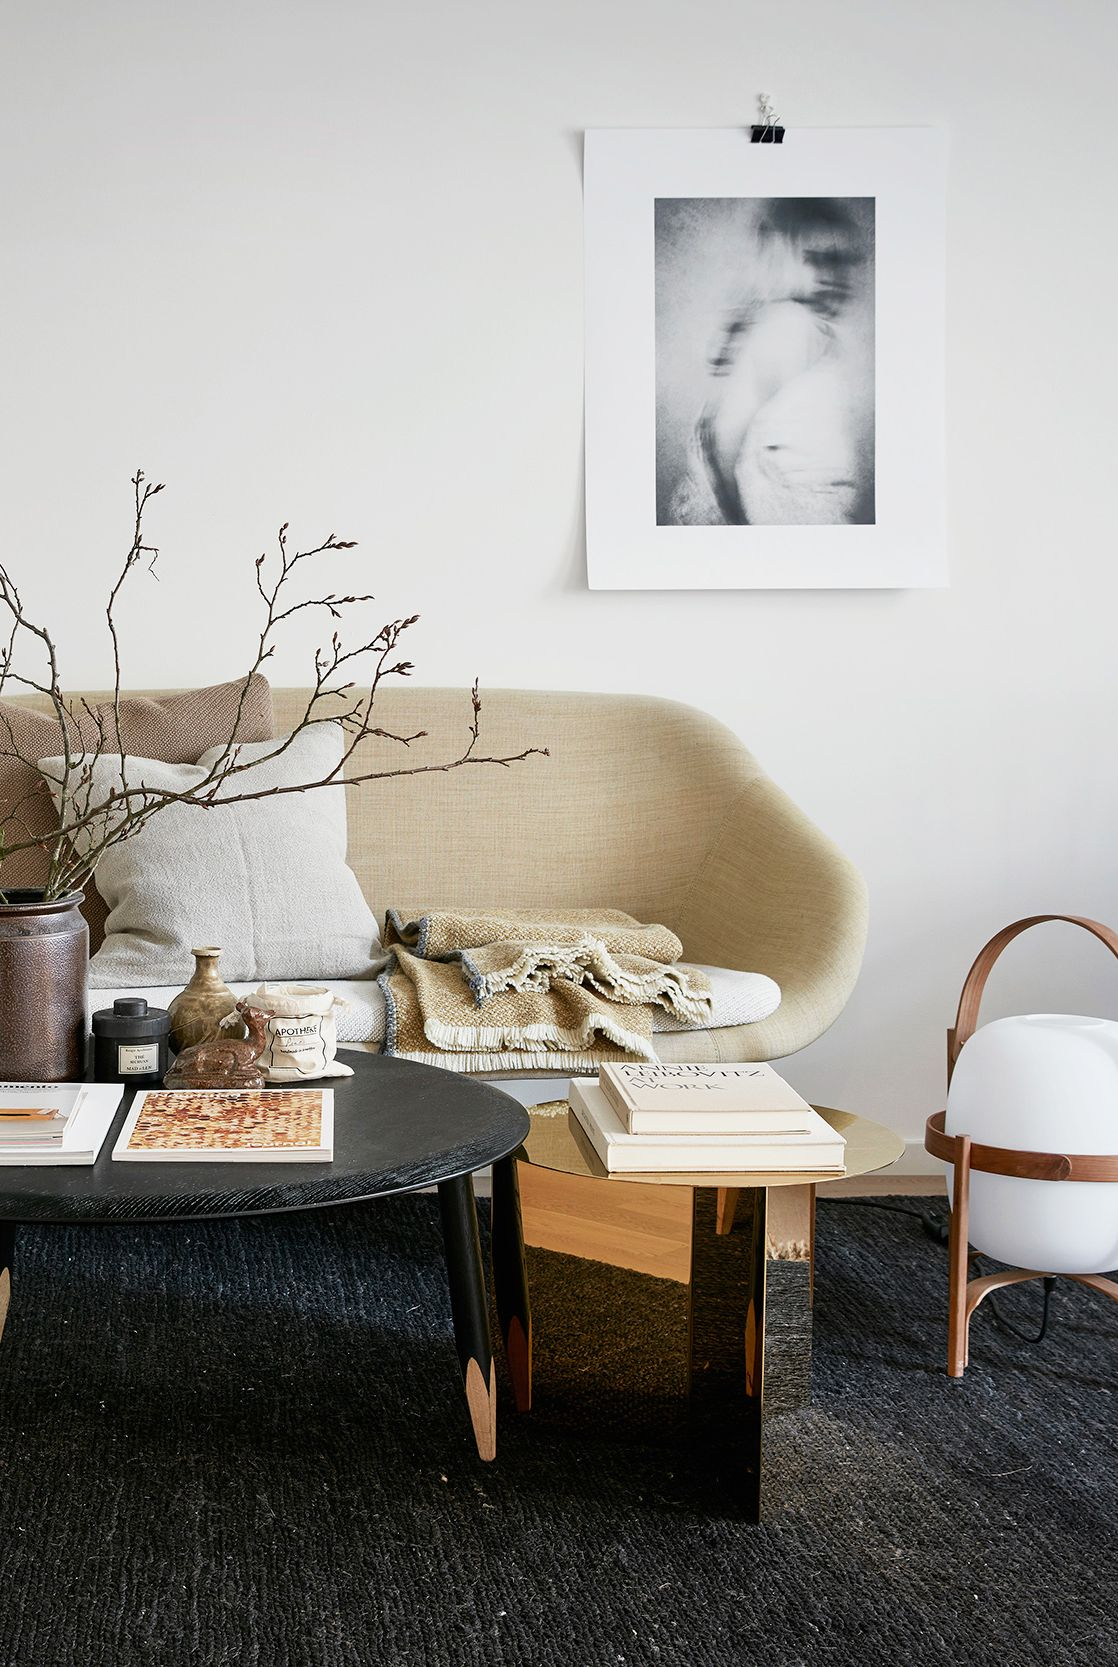 23 Minimalist Living Room Ideas That Make Us Want to Purge Everything